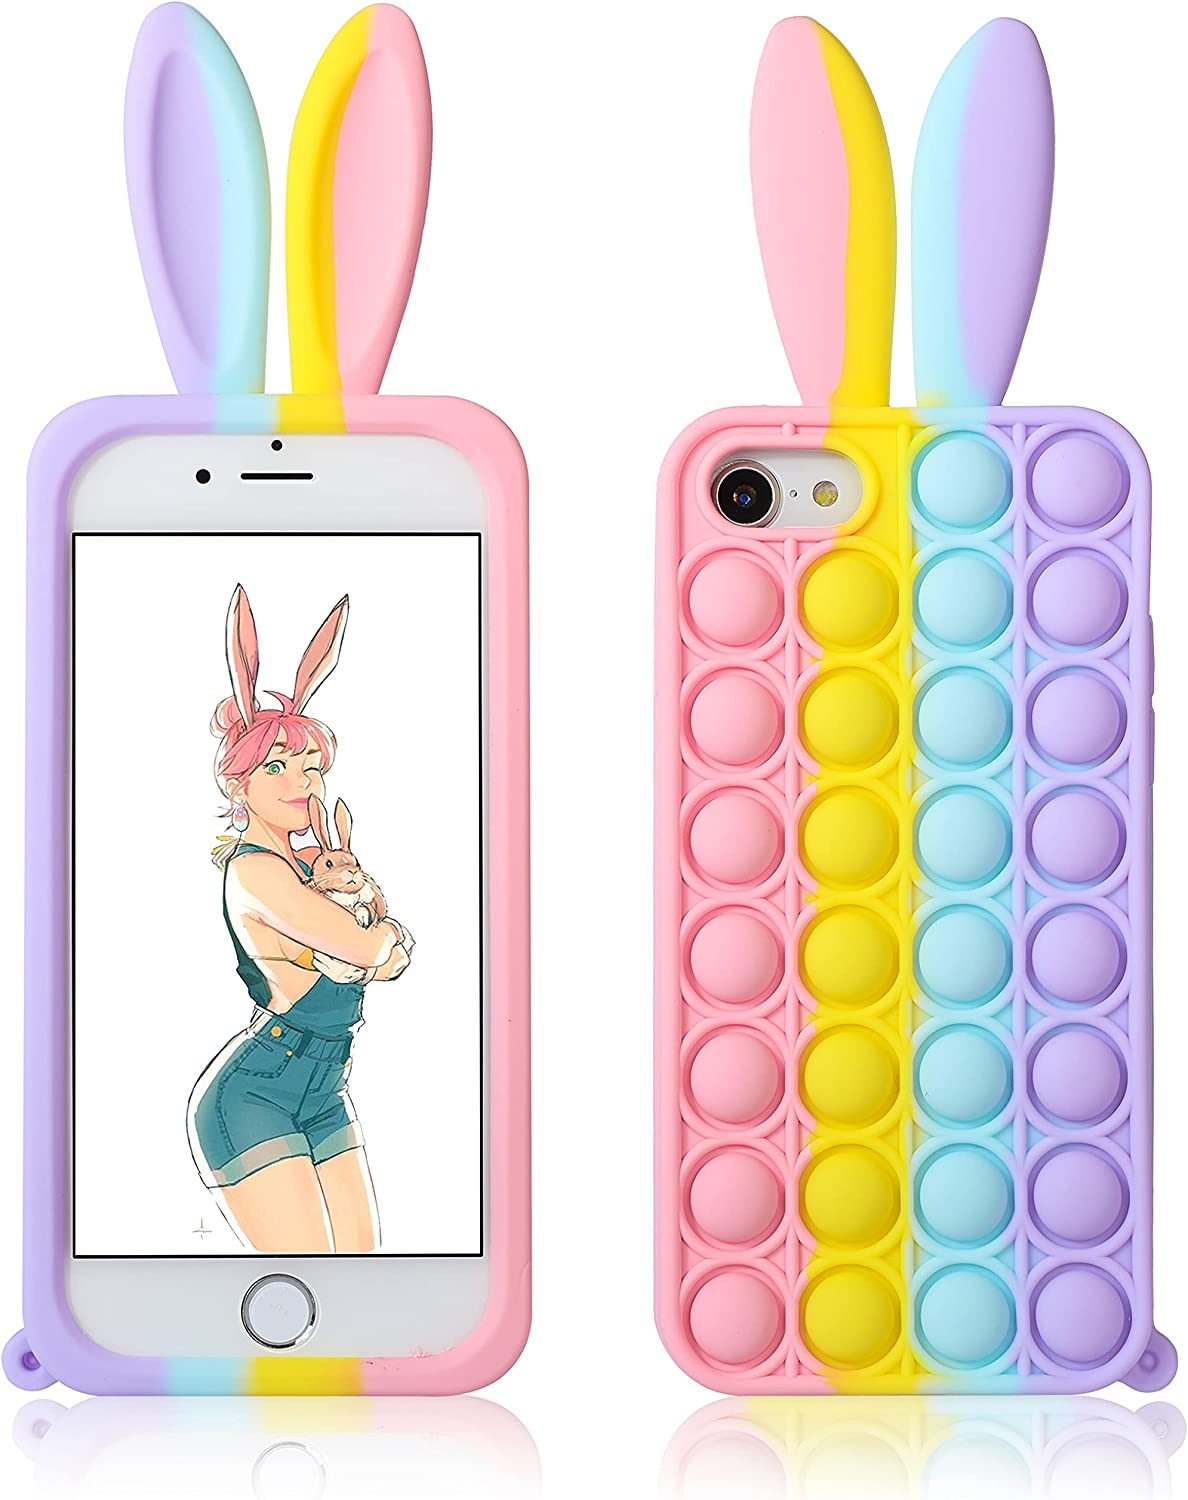 Jowhep for iPhone 6/6S/7/8/SE 2020 Case Cover Cases Silicone Cartoon Fun Kawaii Cute Aesthetic Design Fidget for Girls Boys Friends Women Teen-Bubble Rabbit Ears(for iPhone 6/6S/7/8/SE 2020 4.7